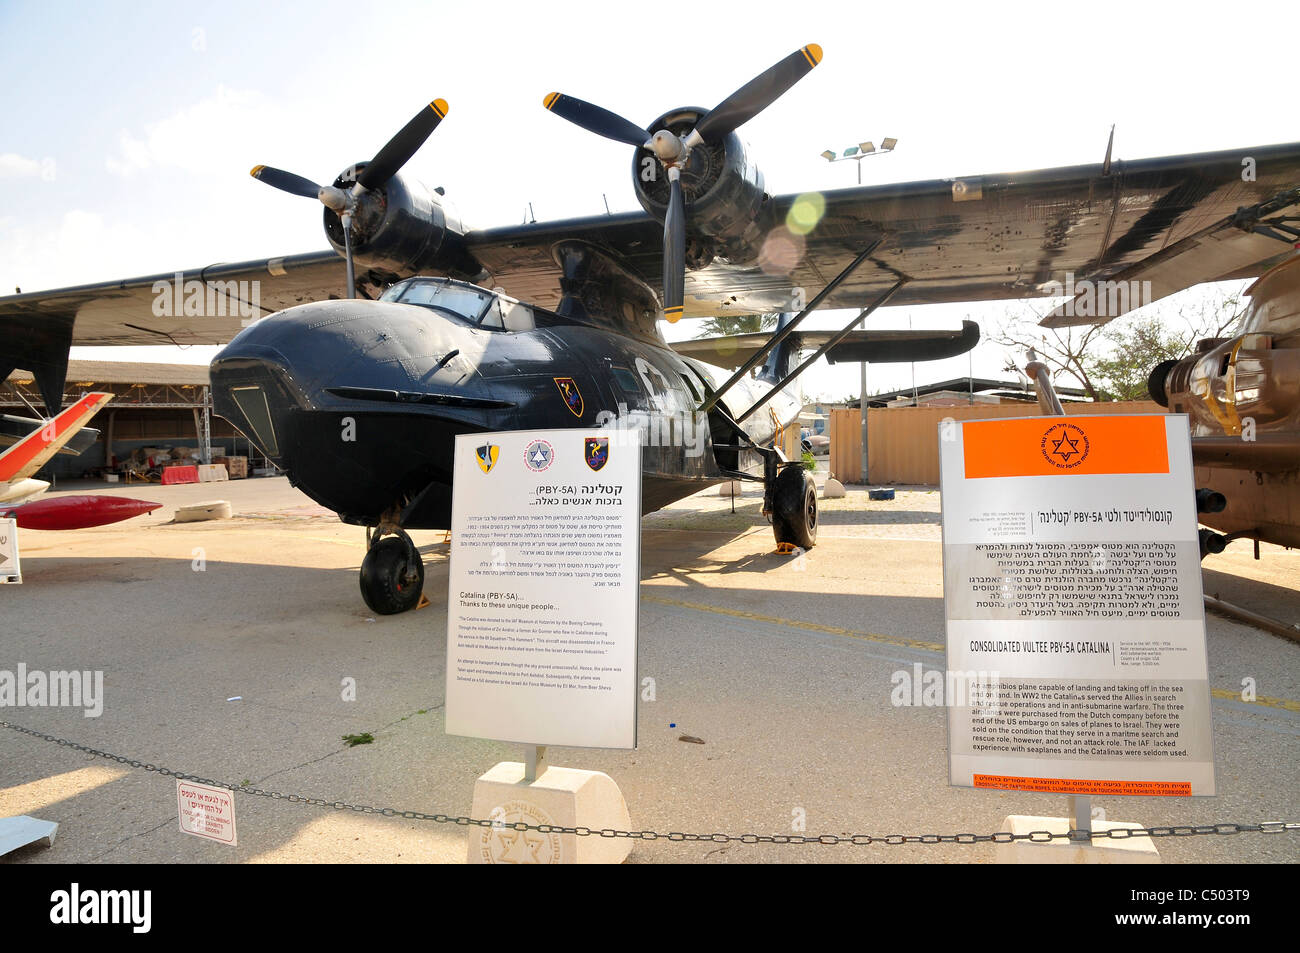 The national centre for Israel's aviation heritage. Israeli Air Force PBY-6A Catalina flying boat - Stock Image